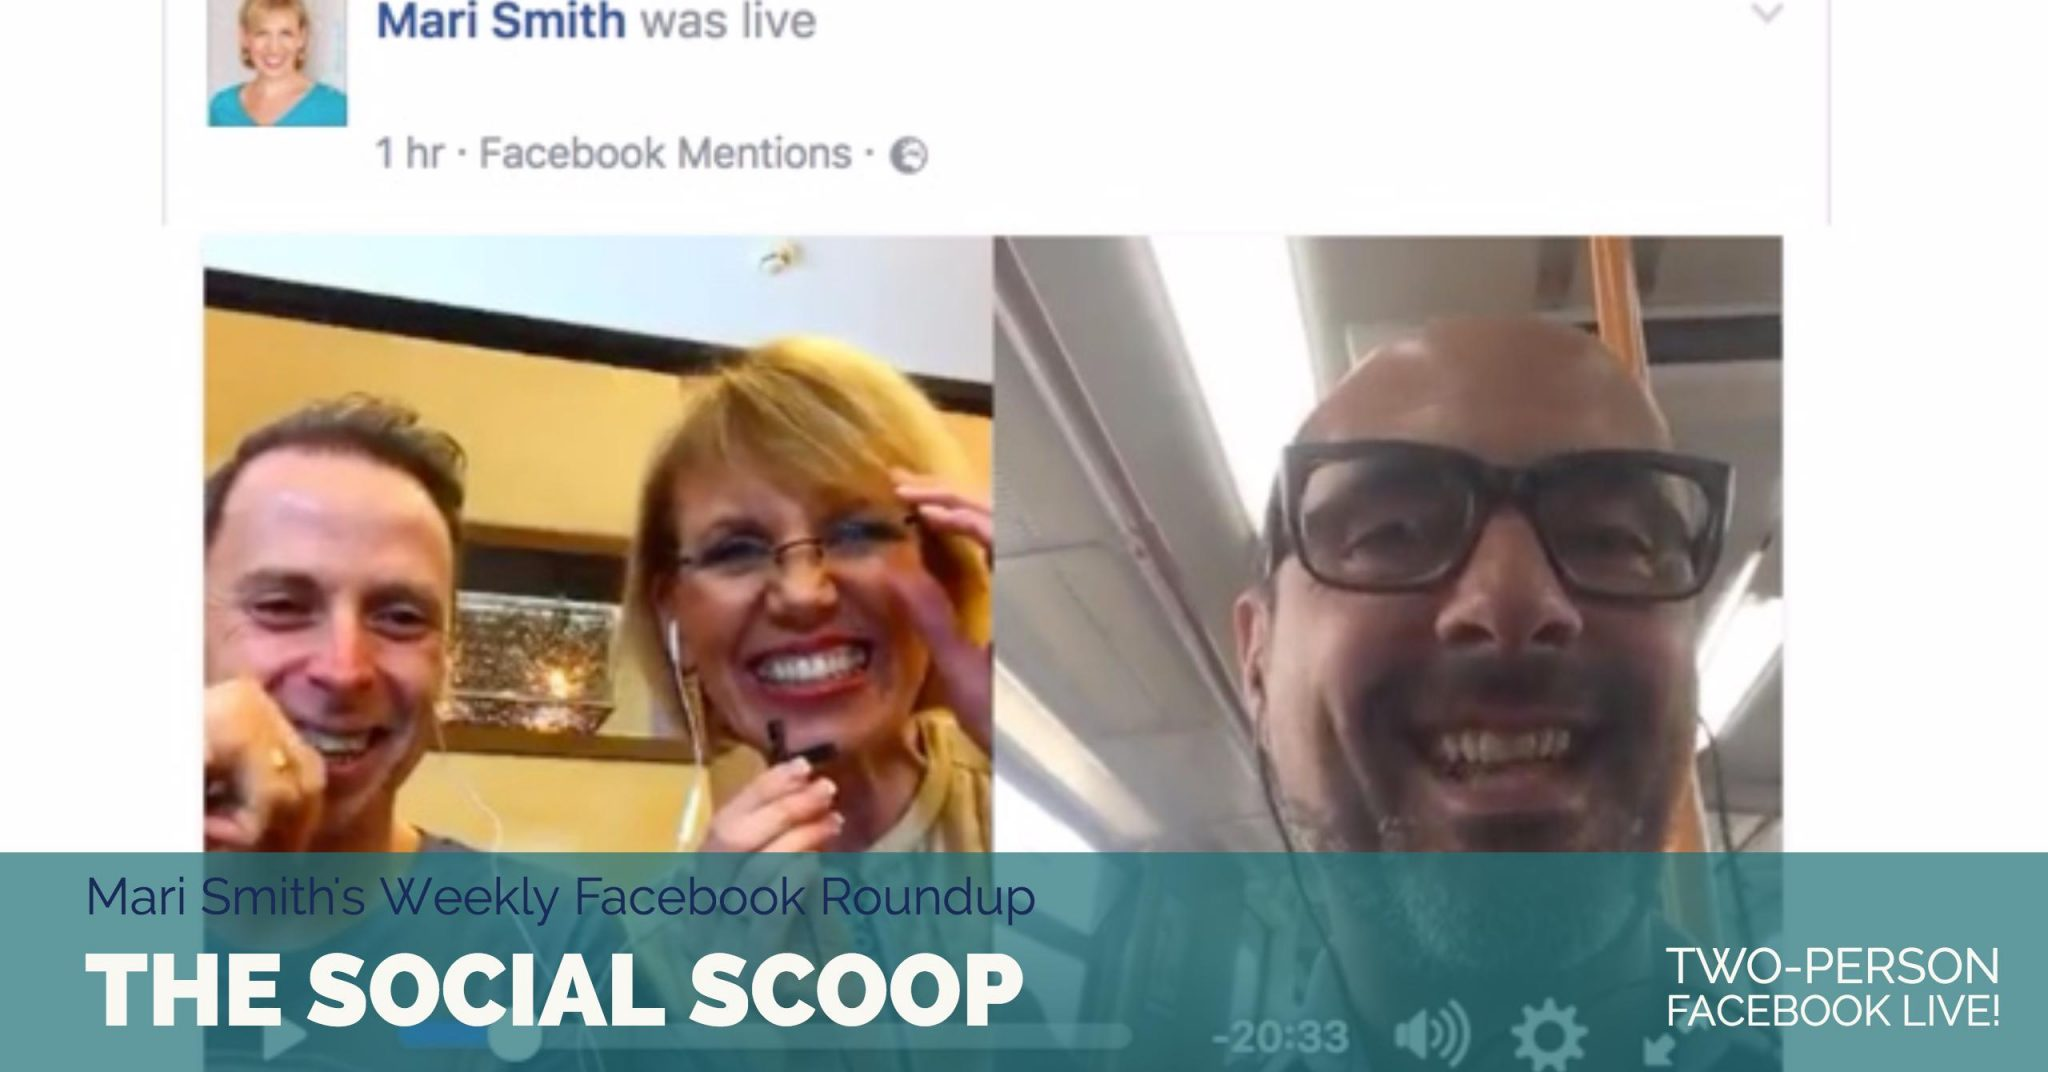 Two-Person Facebook Live, The Effect of Facebook Ad Campaigns & More: The Social Scoop 4/10/17